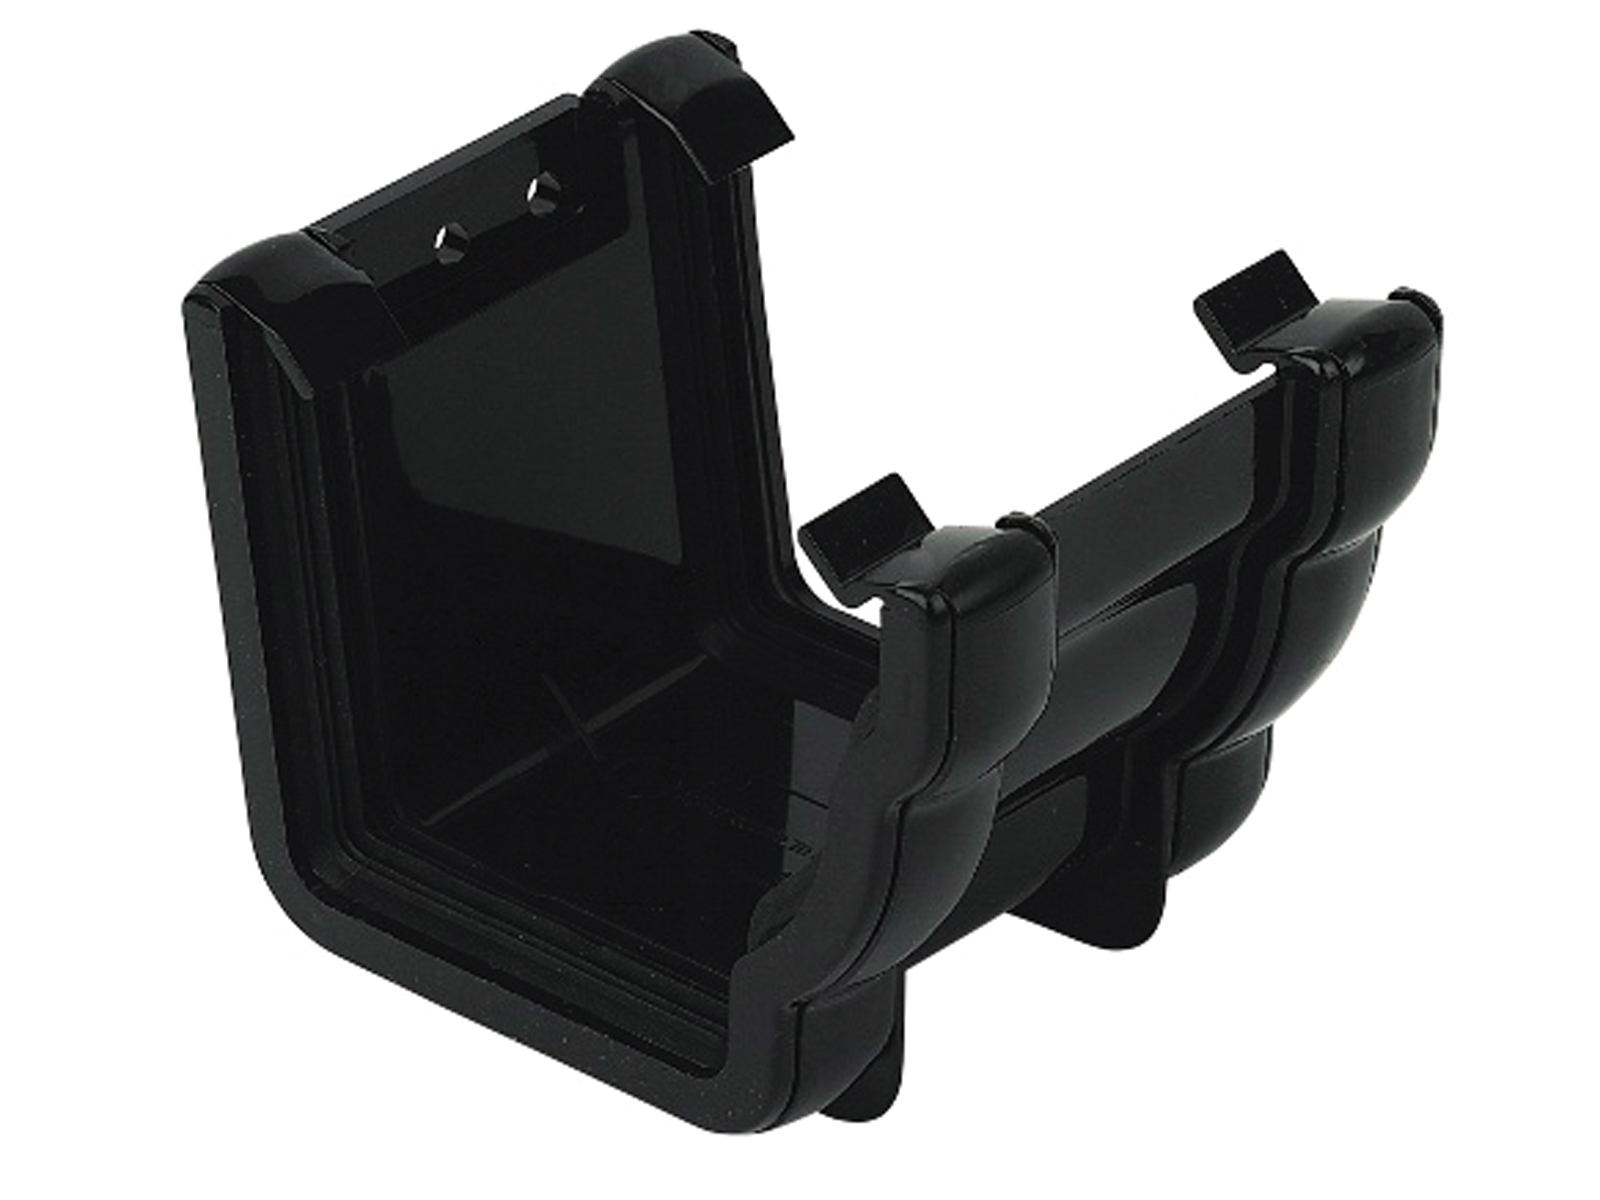 FLOPLAST NIAGARA - RUN1 UNION BRACKET - BLACK